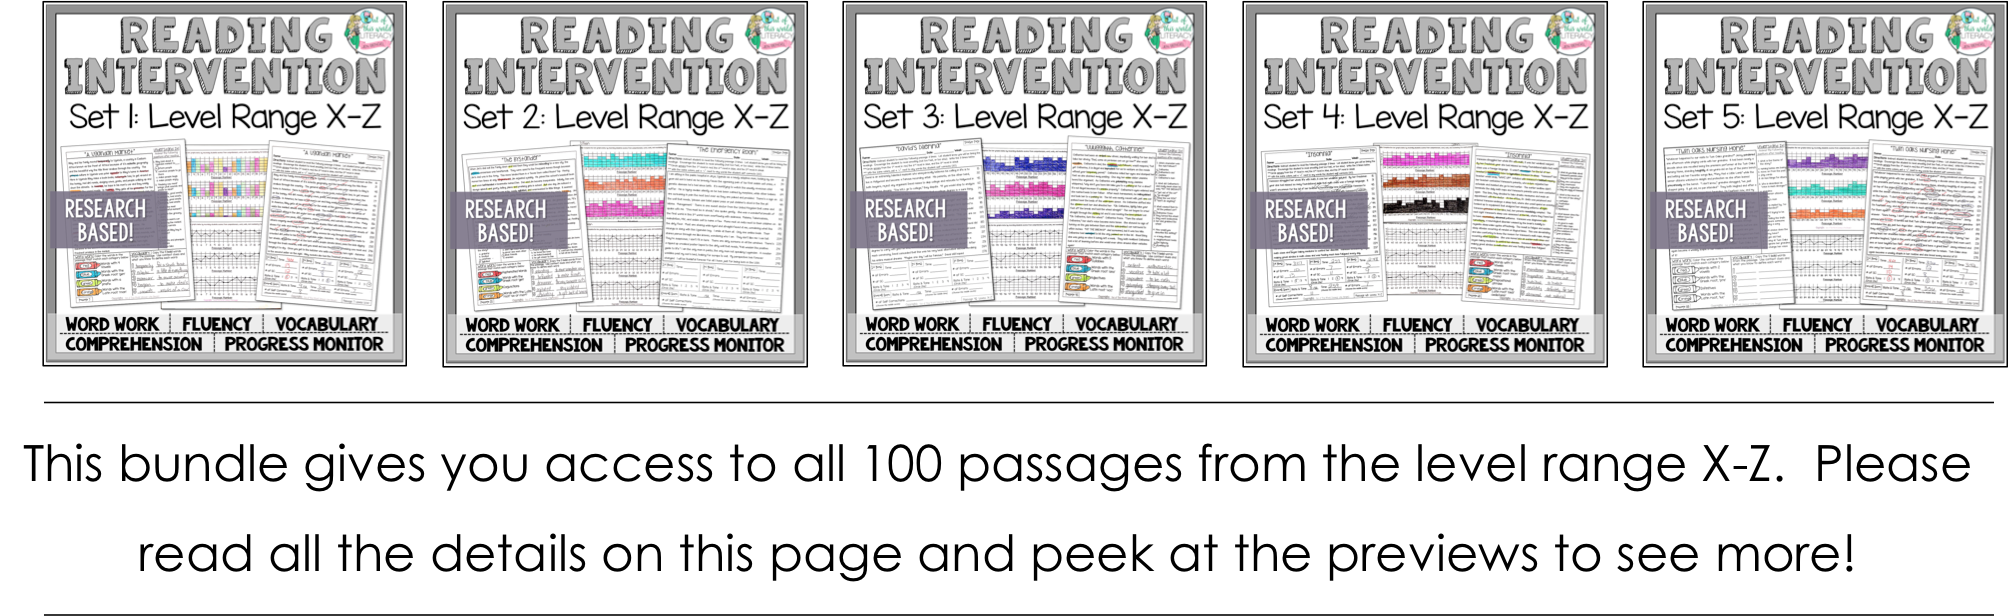 Reading intervention program sets x z jen bengel 8 progress monitoring pages for teacherstutors to track student growth with fluency comprehension word work and vocabulary geenschuldenfo Image collections